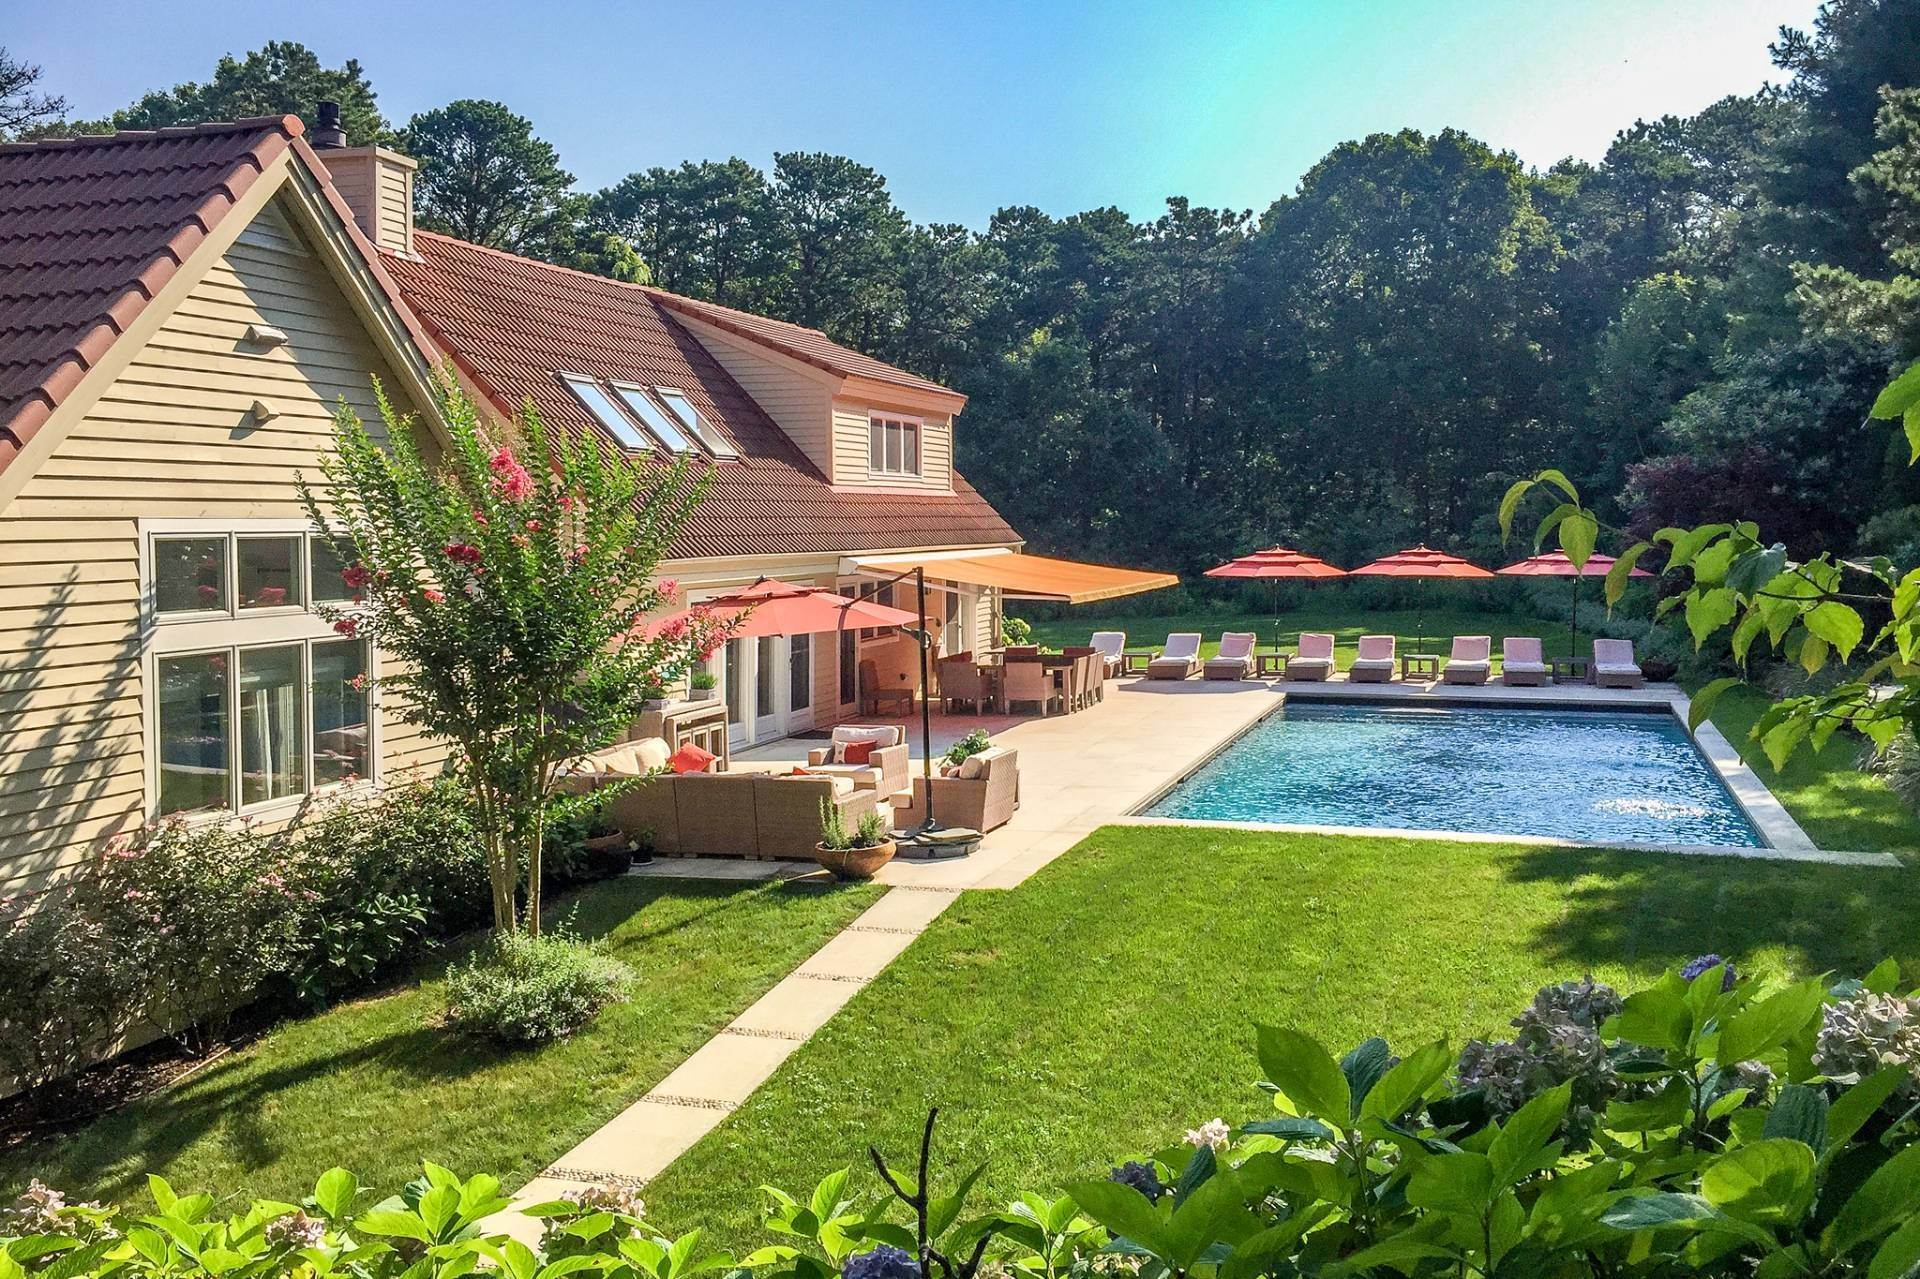 Single Family Home at Wainscott North Retreat Wainscott, NY 11975